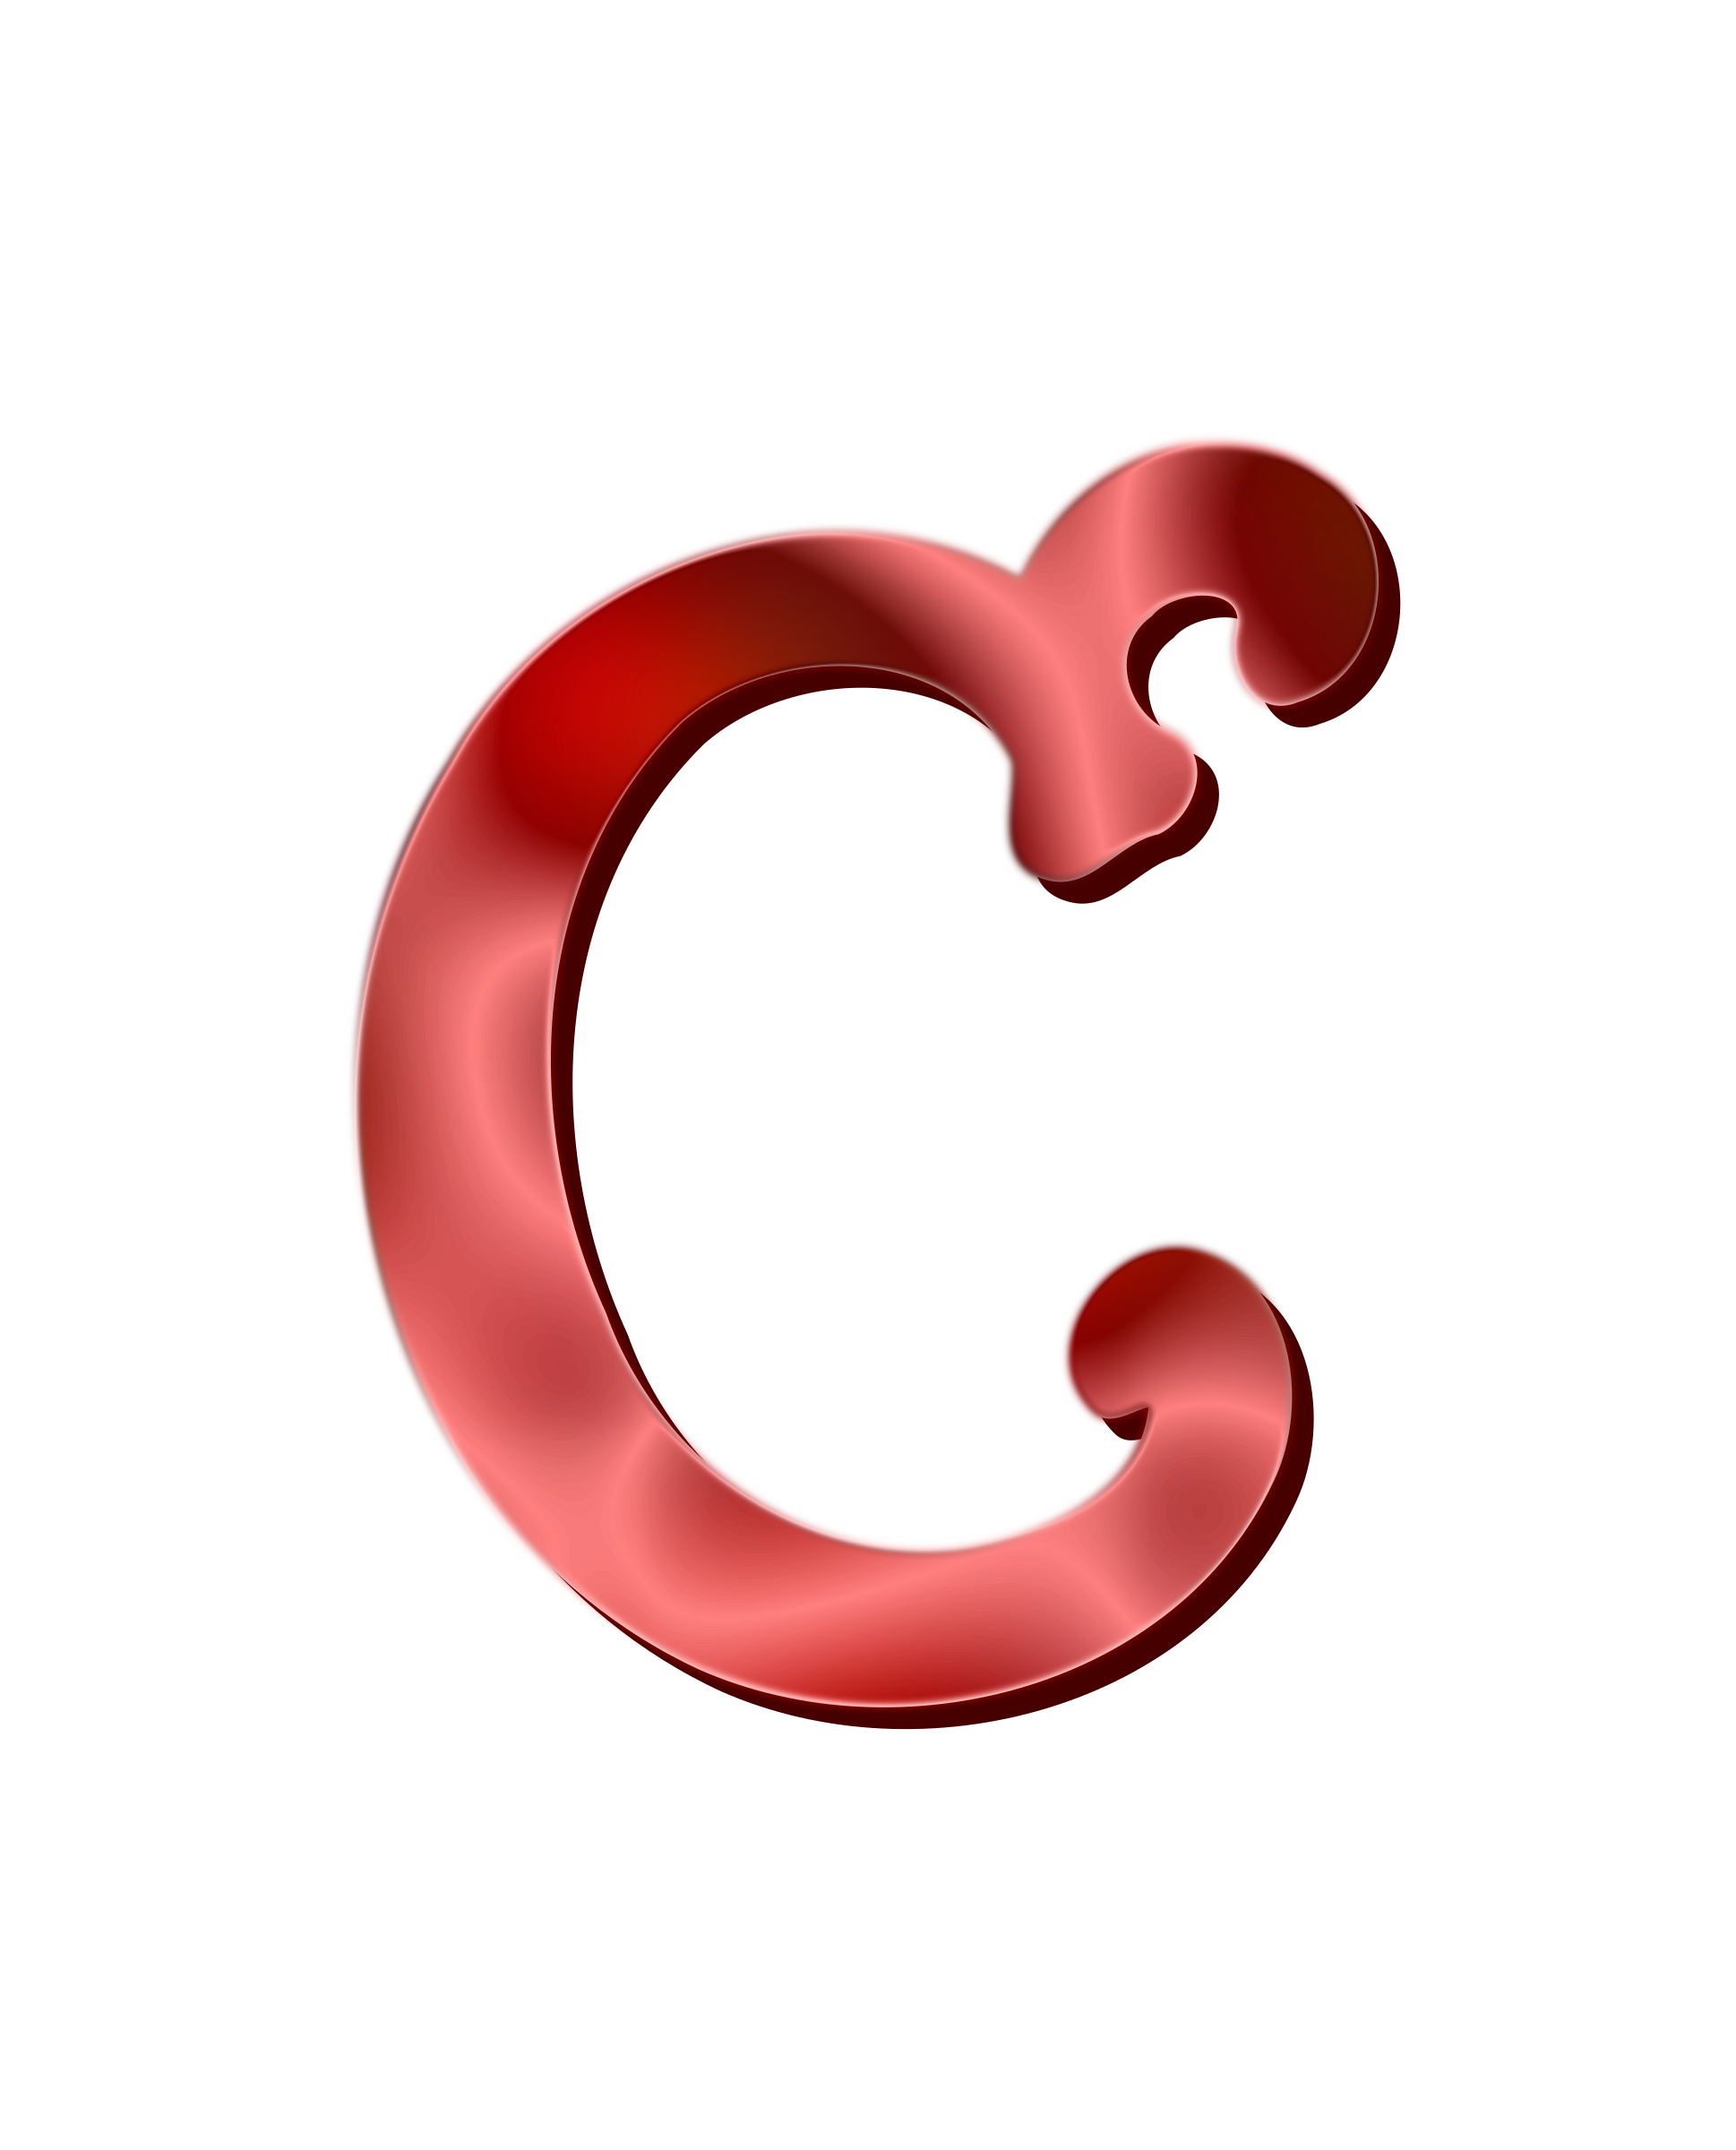 Letter c logo png. Alphabet icons free and